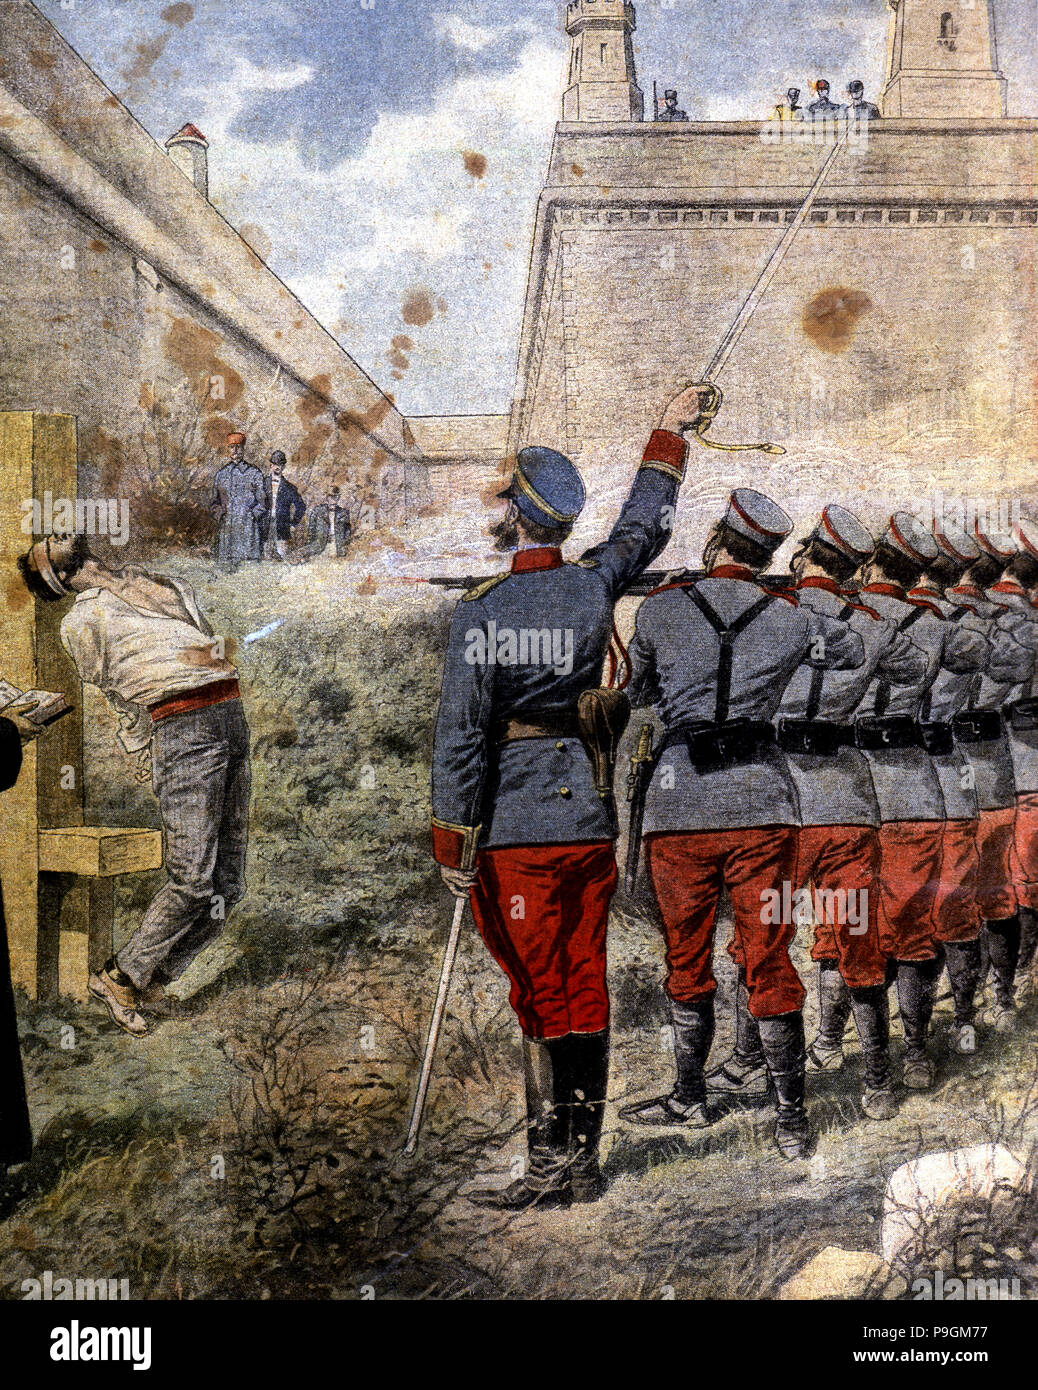 Execution of insurgents in the moats of the Castle of Montjuic, convicted by sacking the churches… Stock Photo